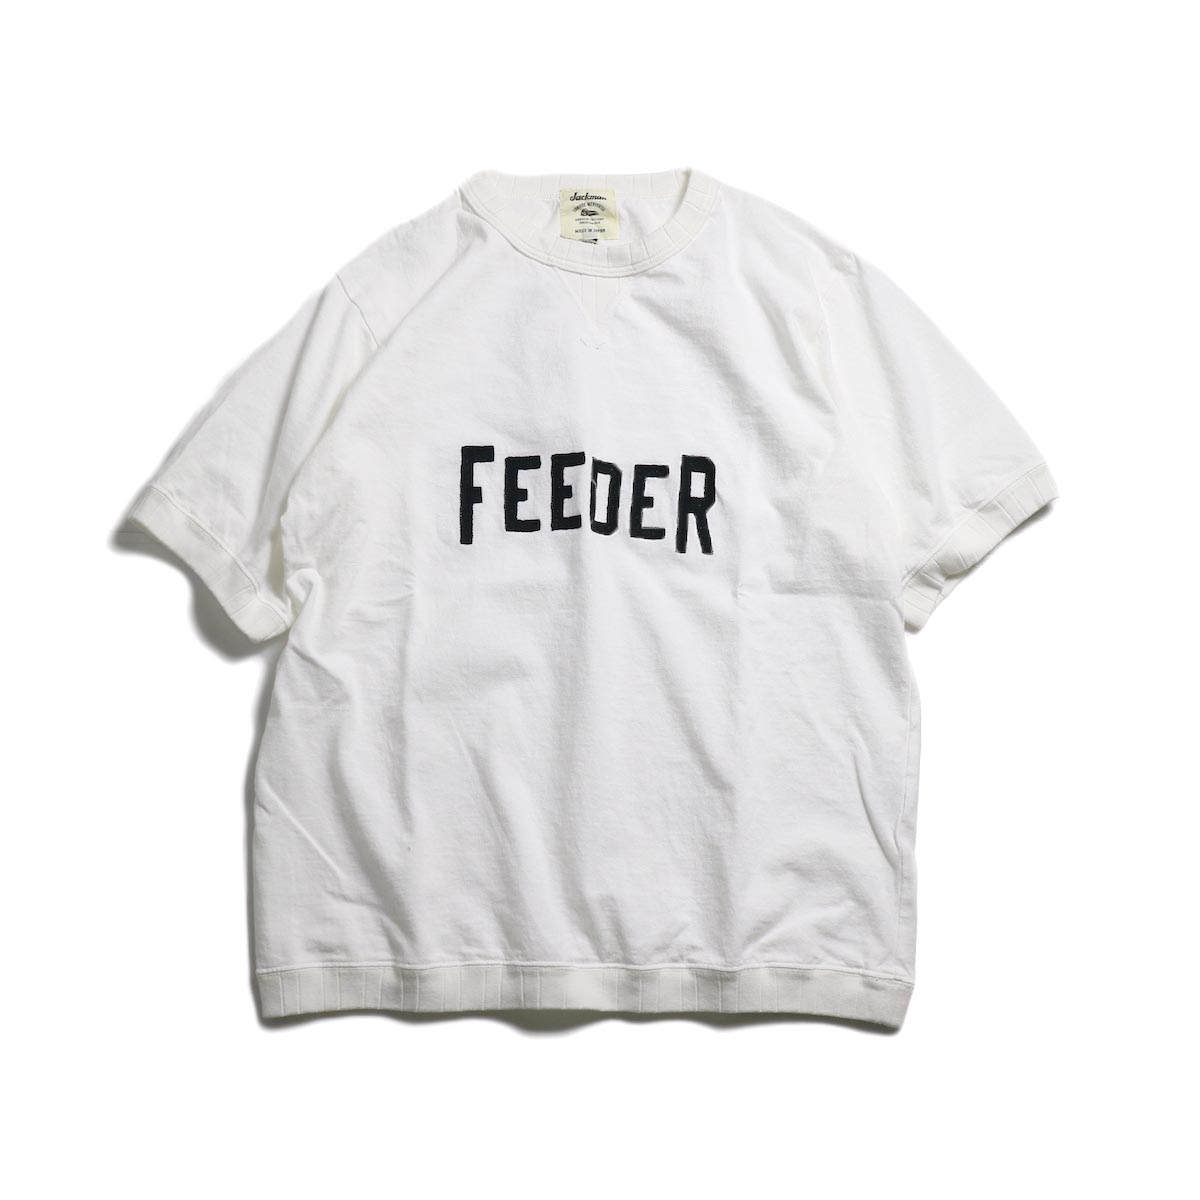 Jackman / Rib T-Shirt (FEEDER) -White